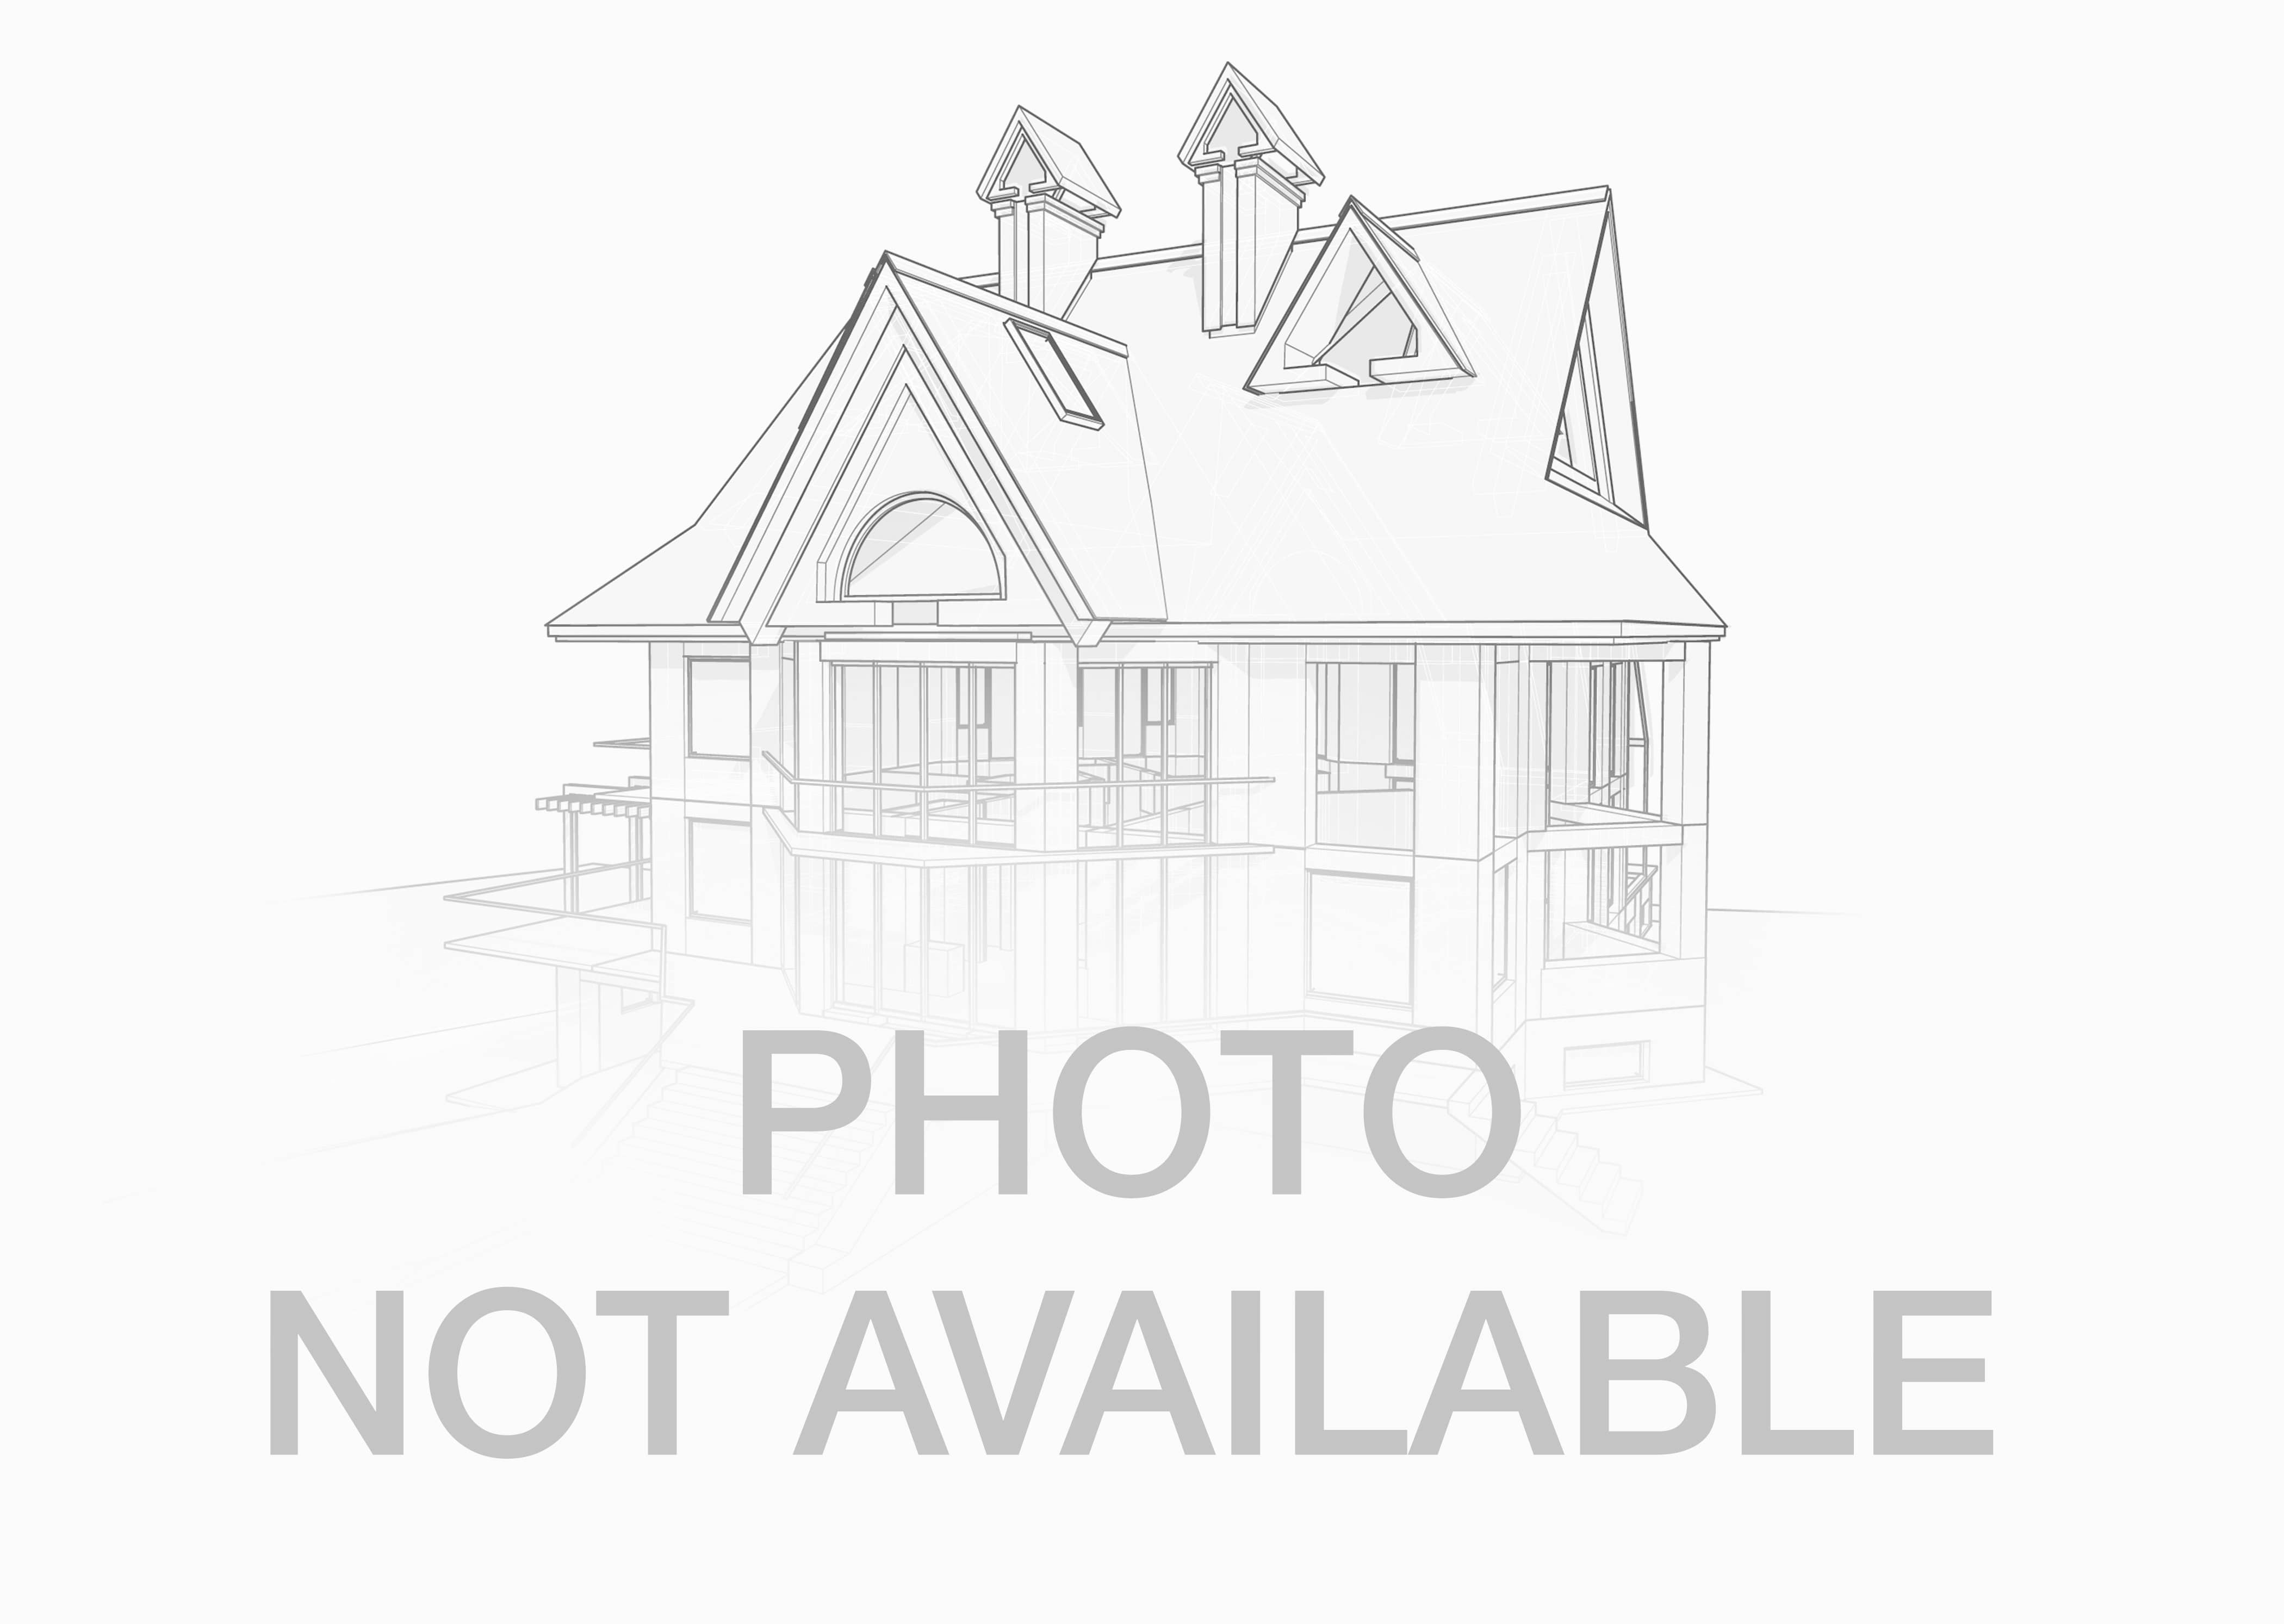 14290 Lancaster Farms Dr, Prince George, VA, 23842 - MLS ID#1921275